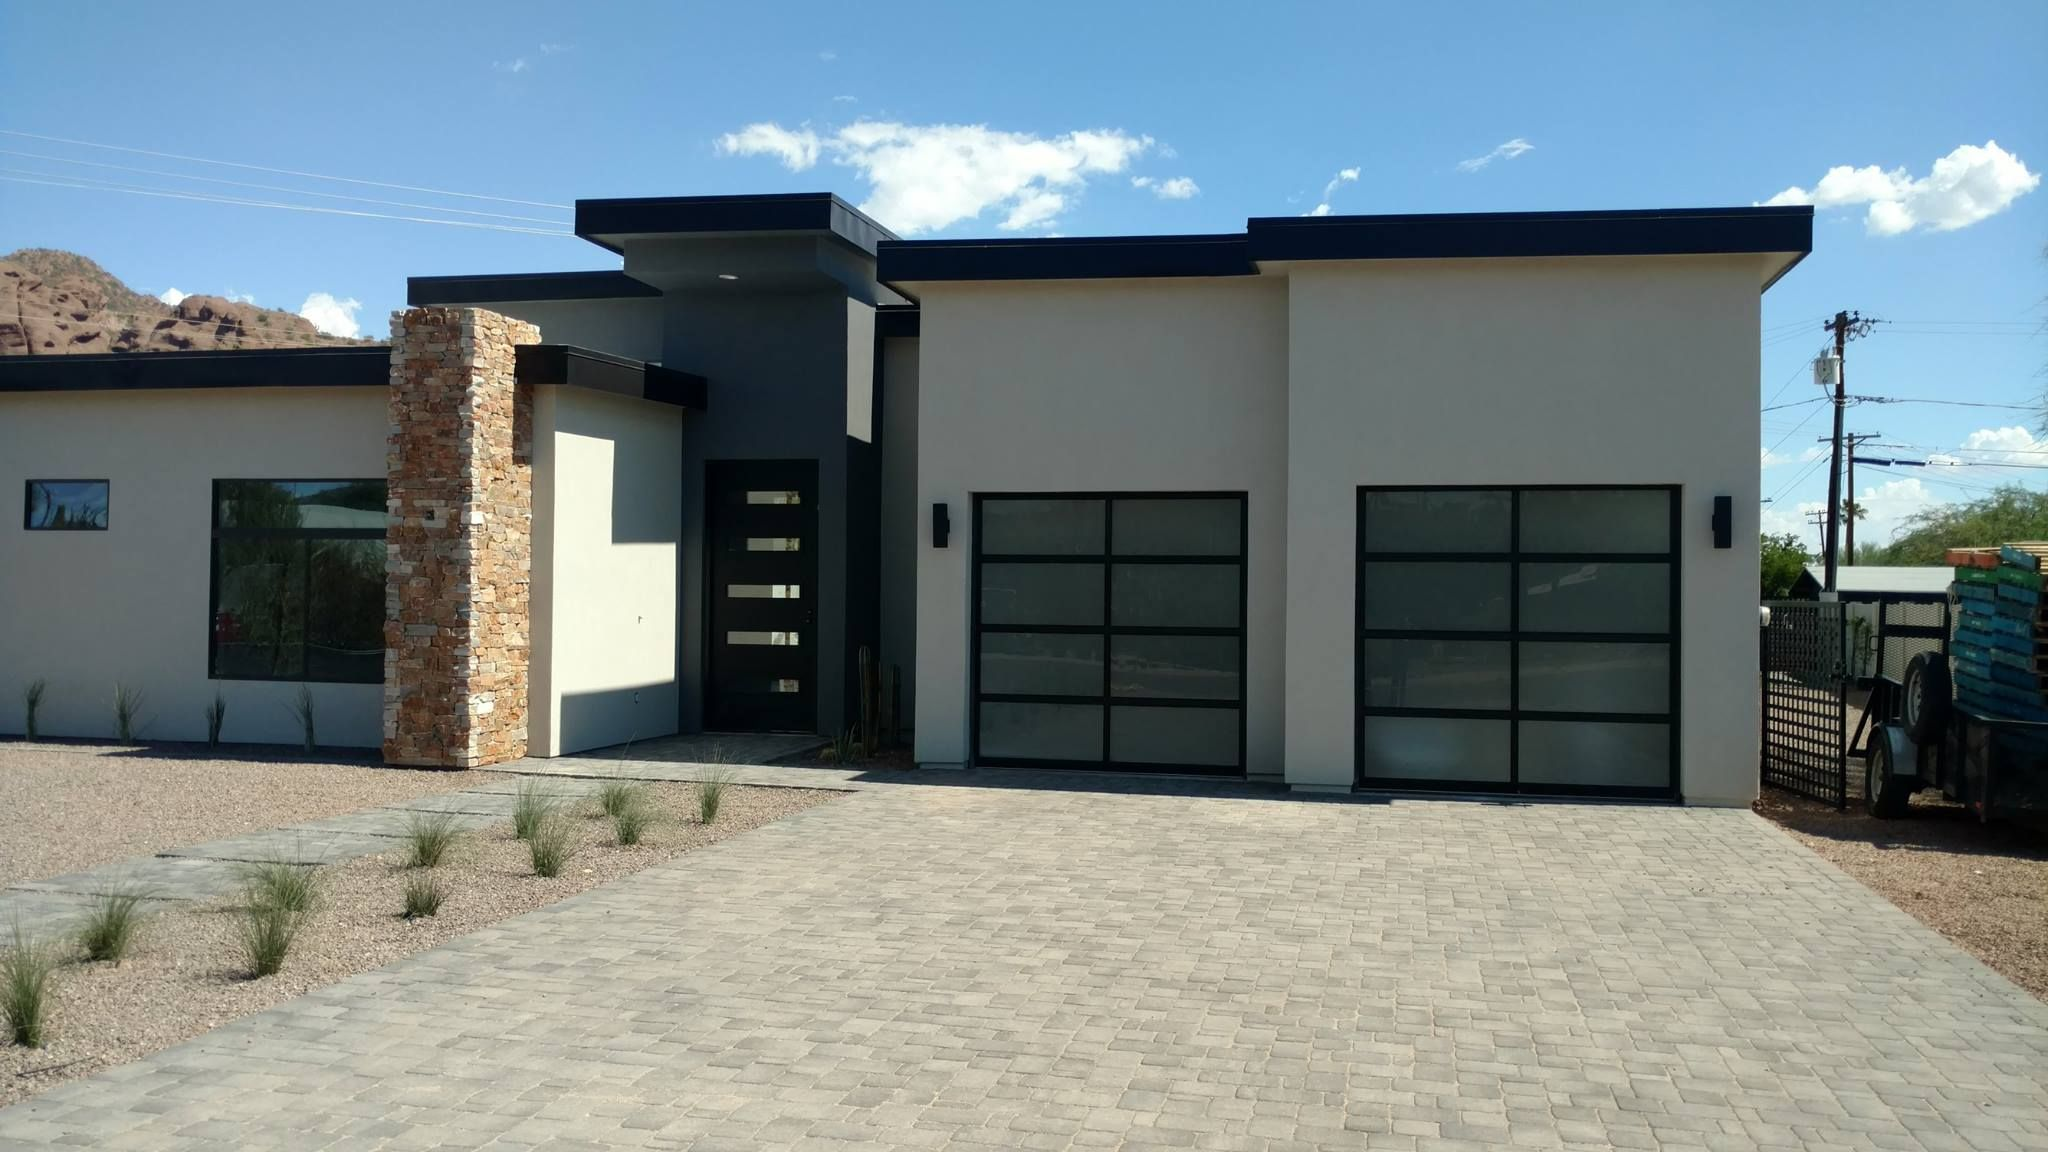 Clopay Avante Collection Glass Garage Door On A Modern Home Black Aluminum Frame And Frosted Glass For Priv Garage Doors Modern Garage Doors Glass Garage Door